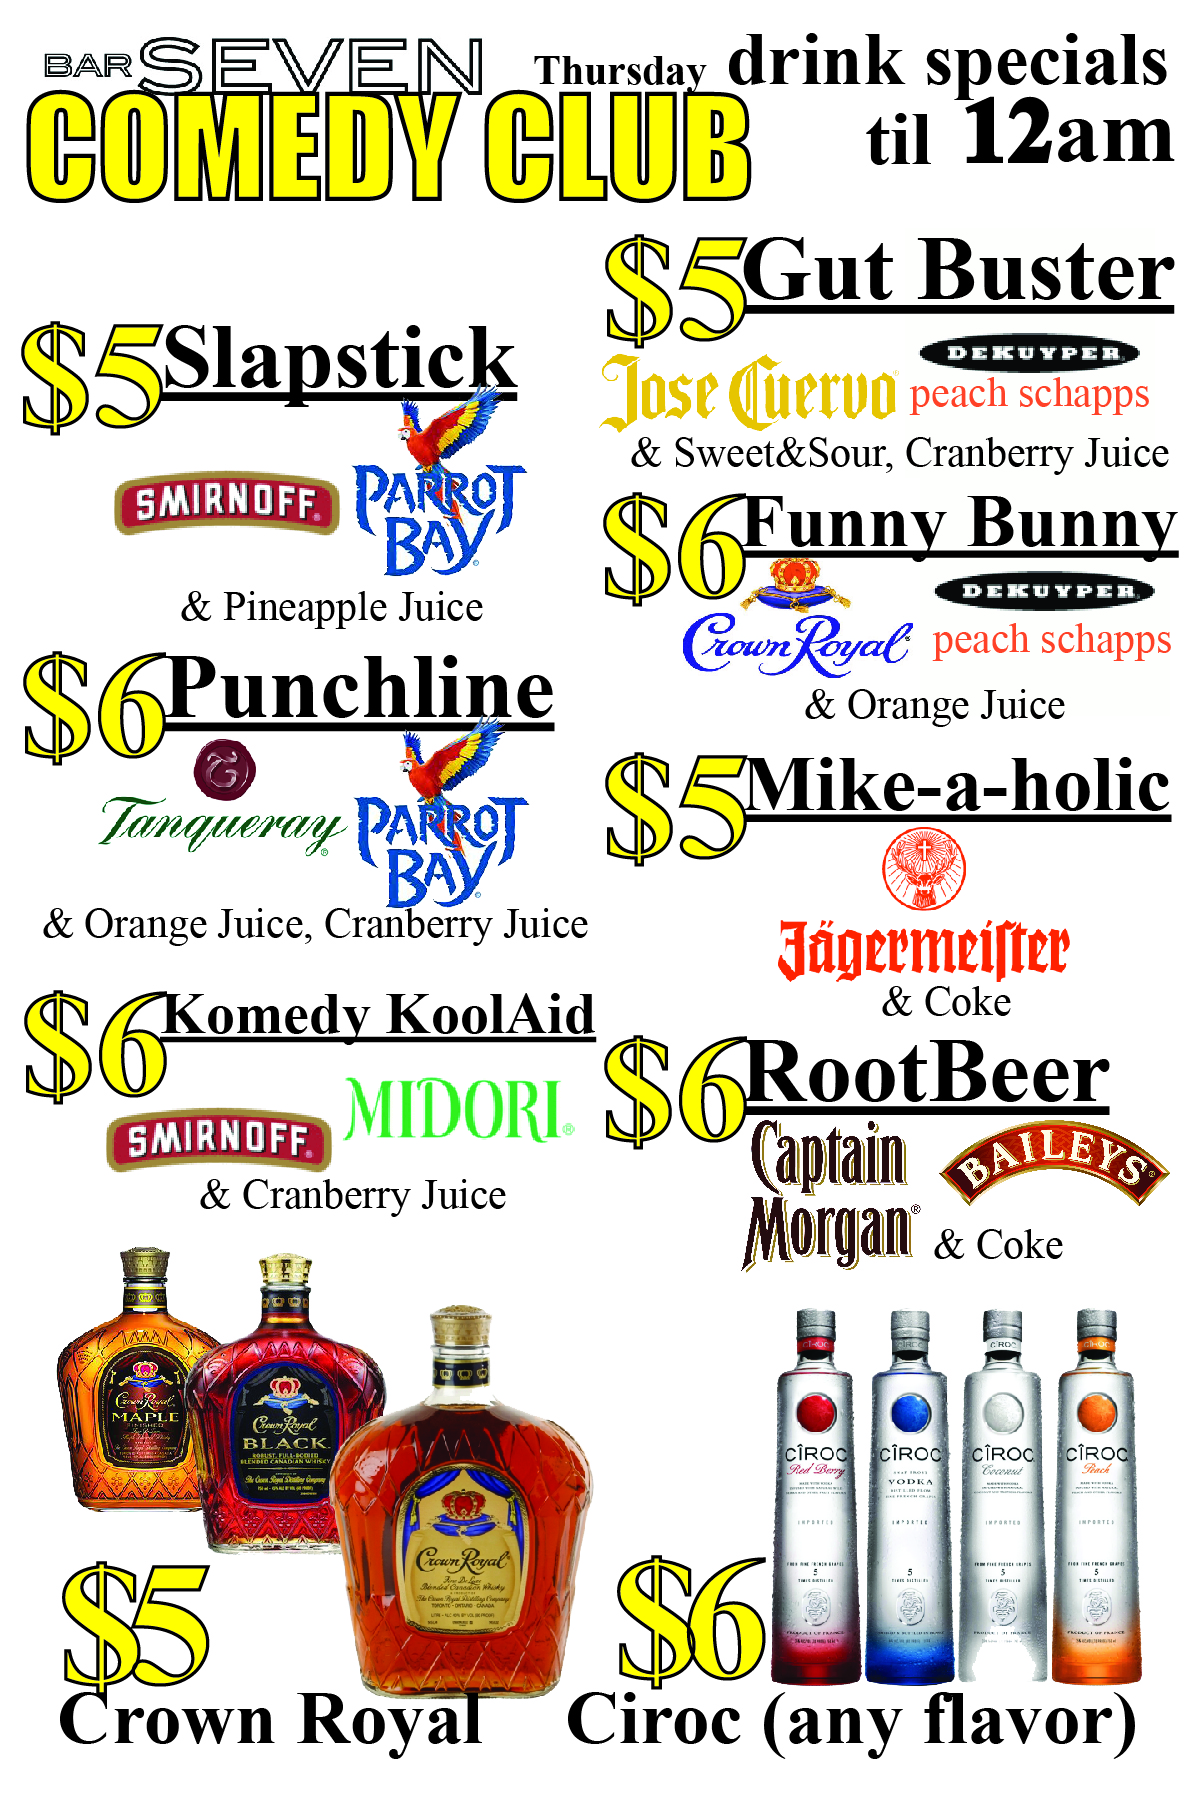 thursday drink specials-01